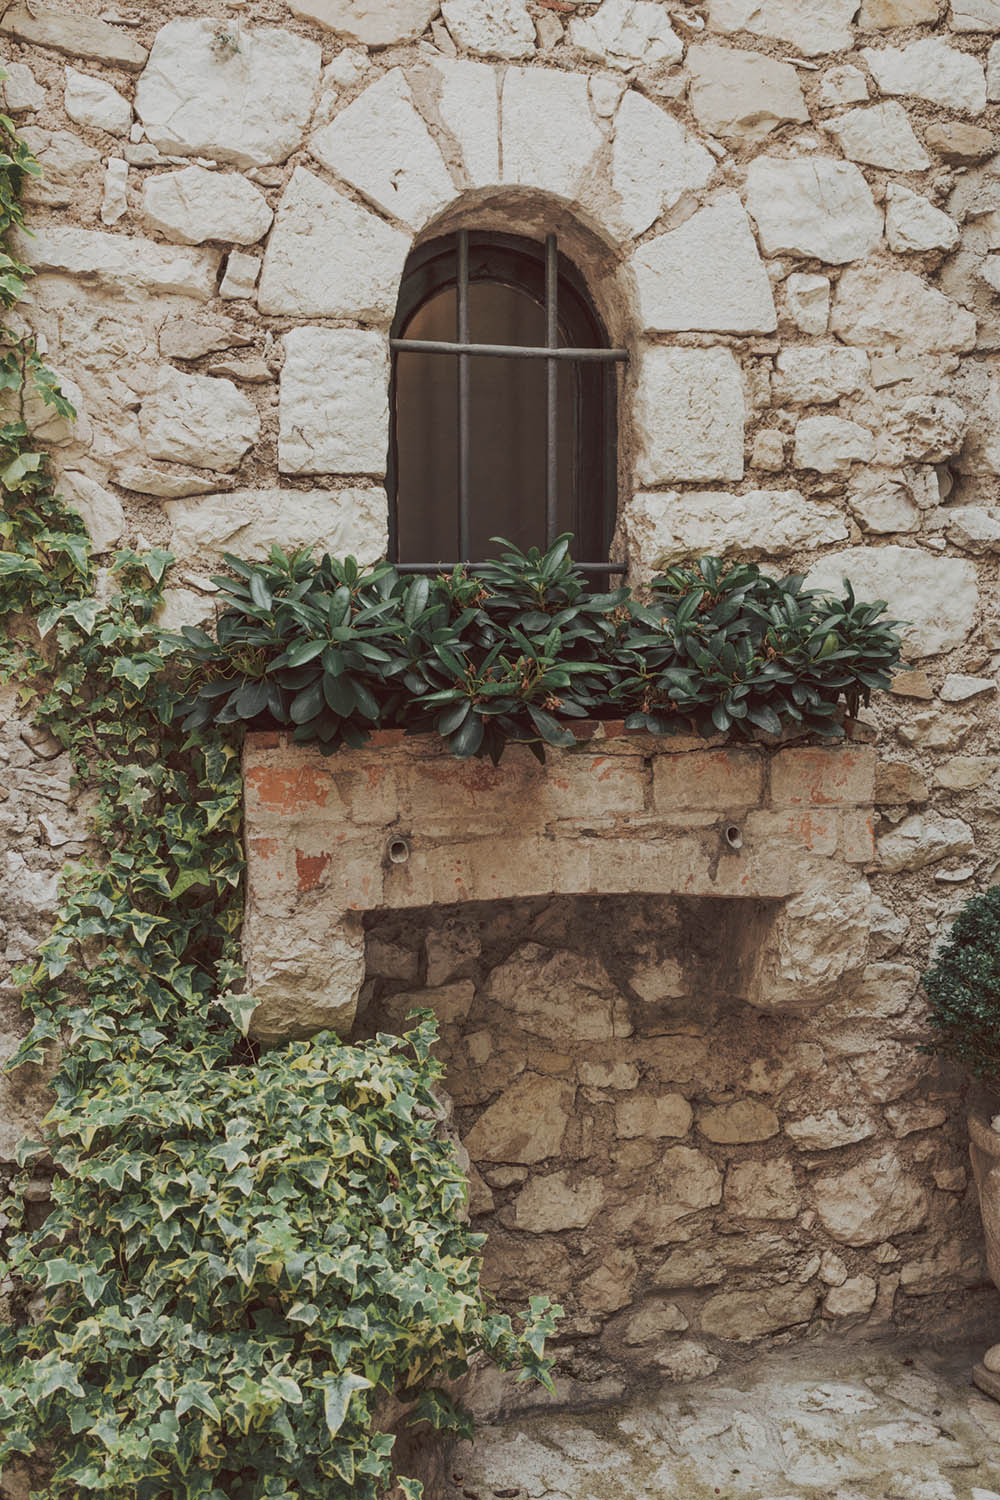 Day Trip To Eze Village South of France Complete Guide. #smallvillage #europeanvillage #frenchvillage